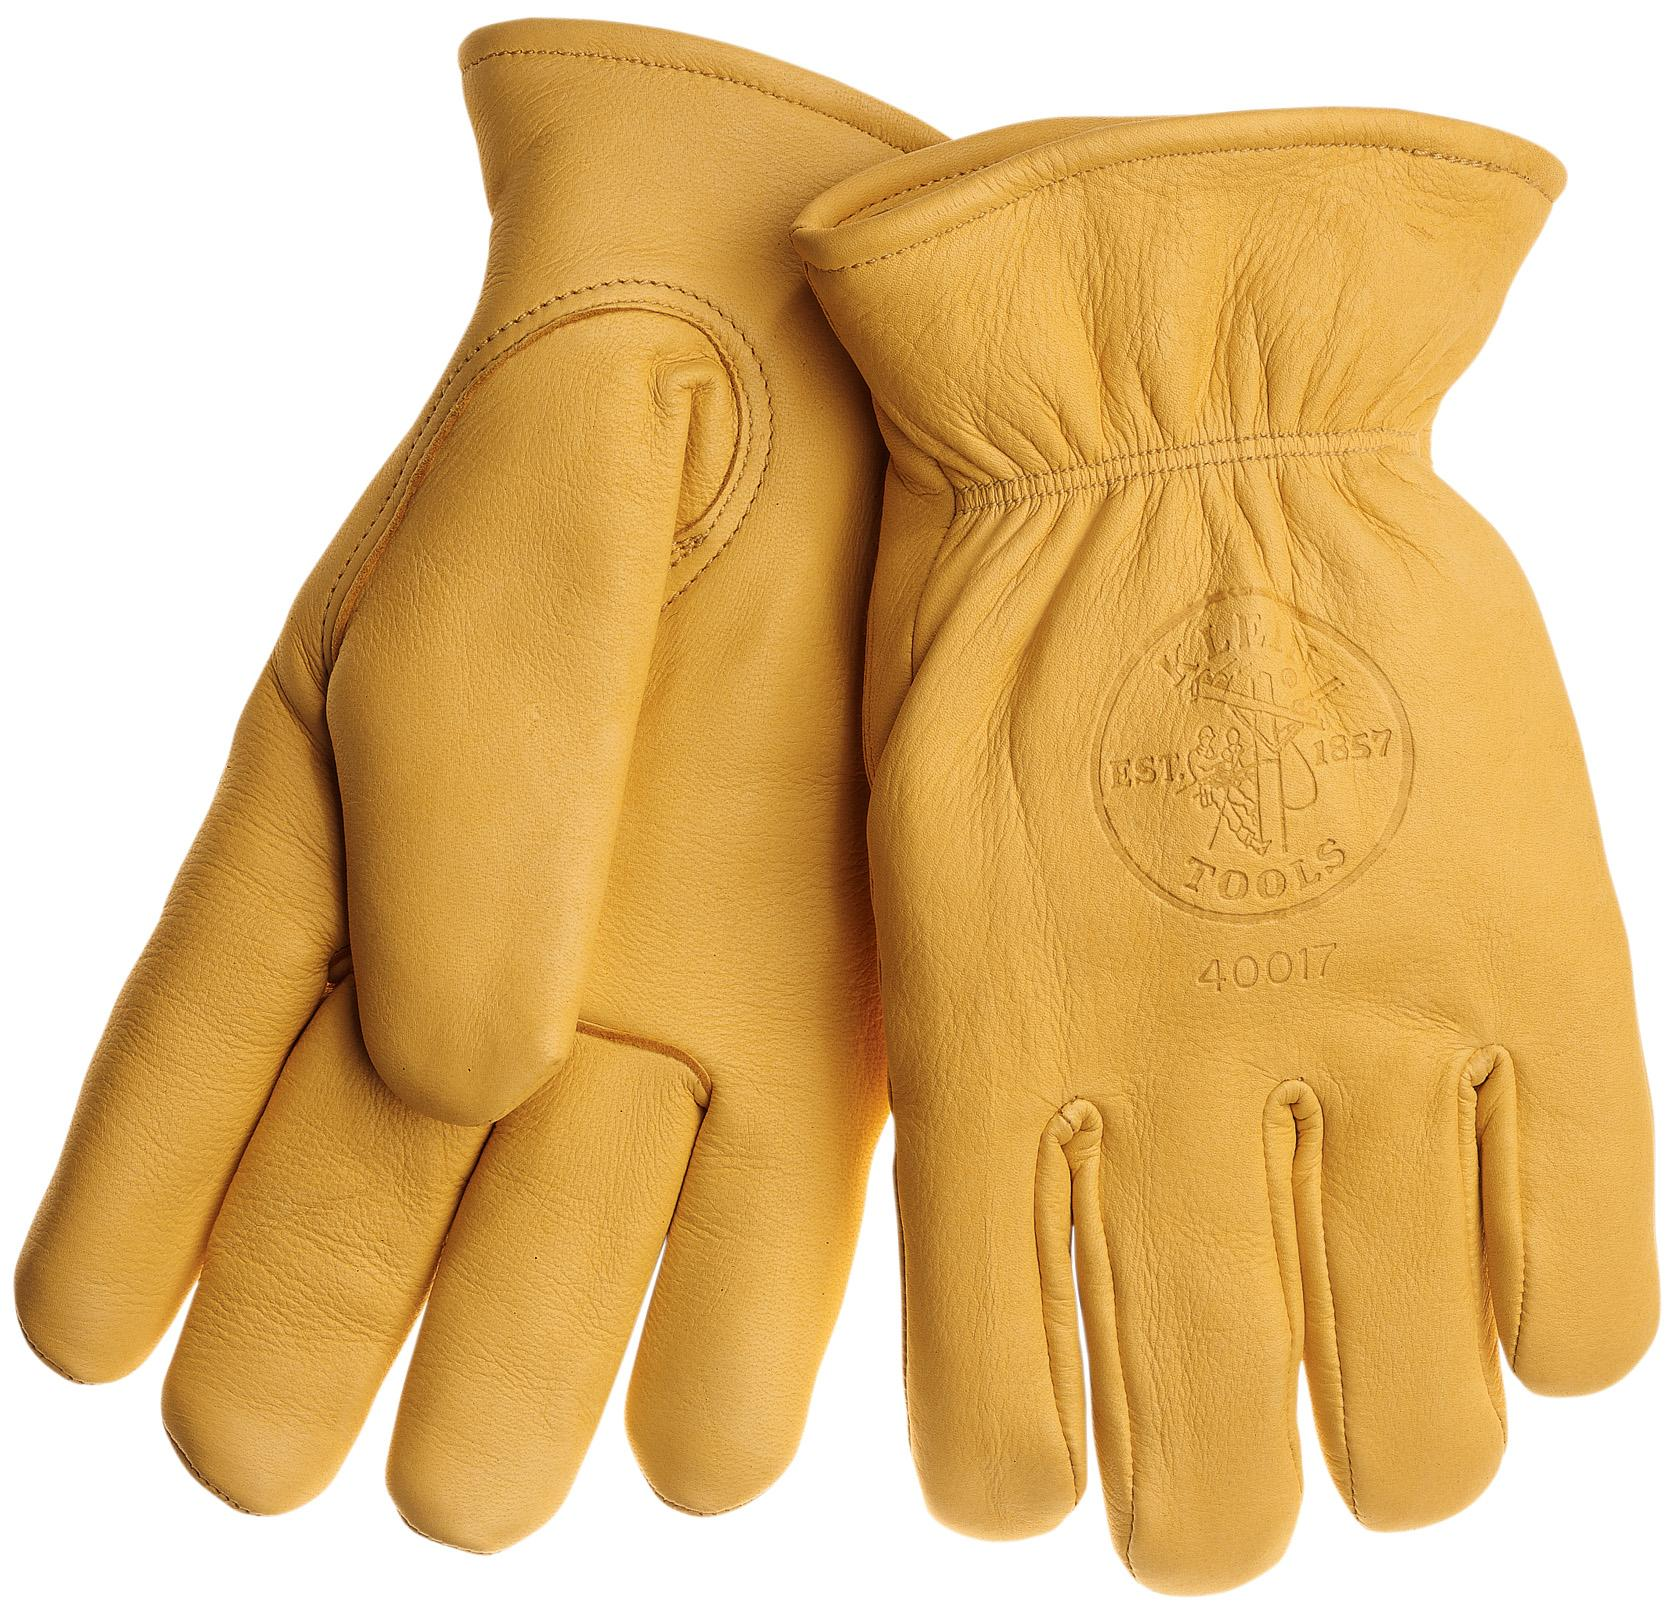 Cowhide Gloves with Thinsulate  Medium 40016